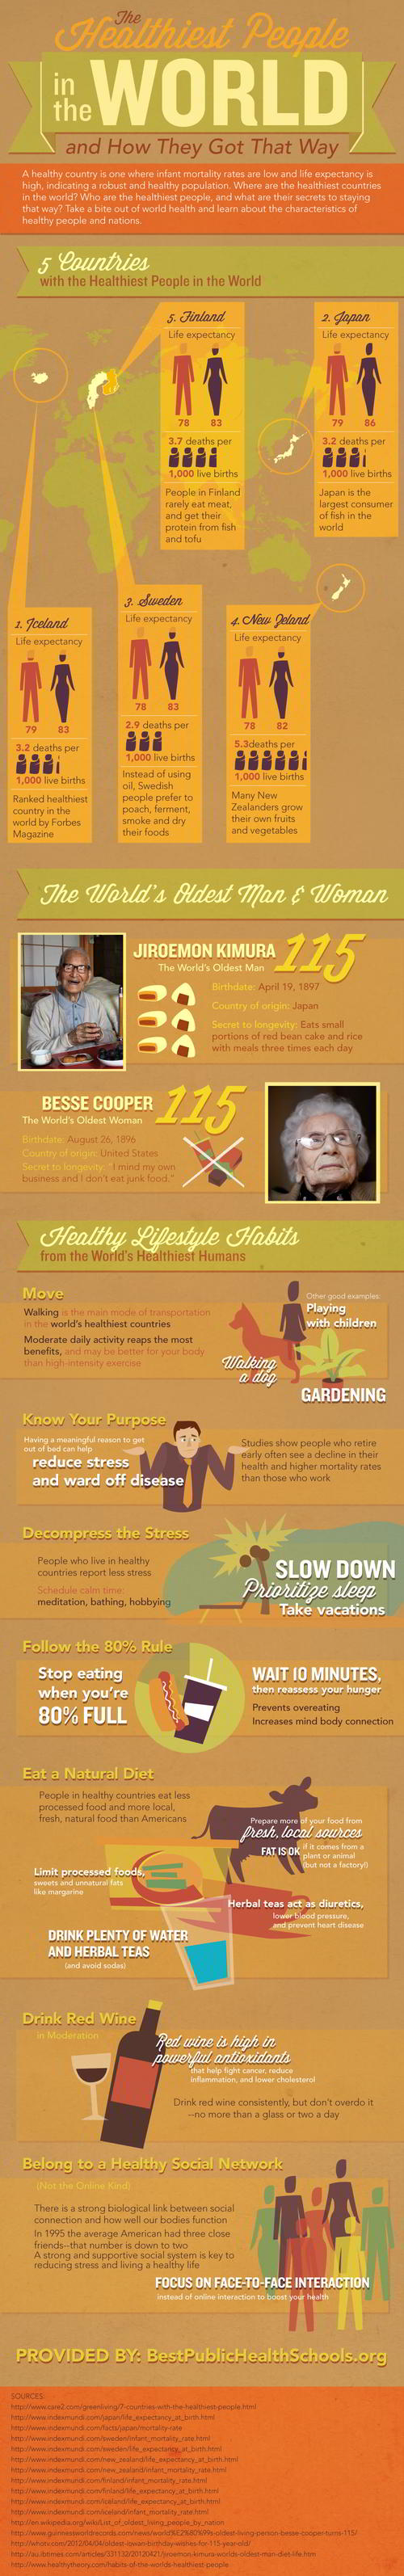 Healthiest People in the world infographic